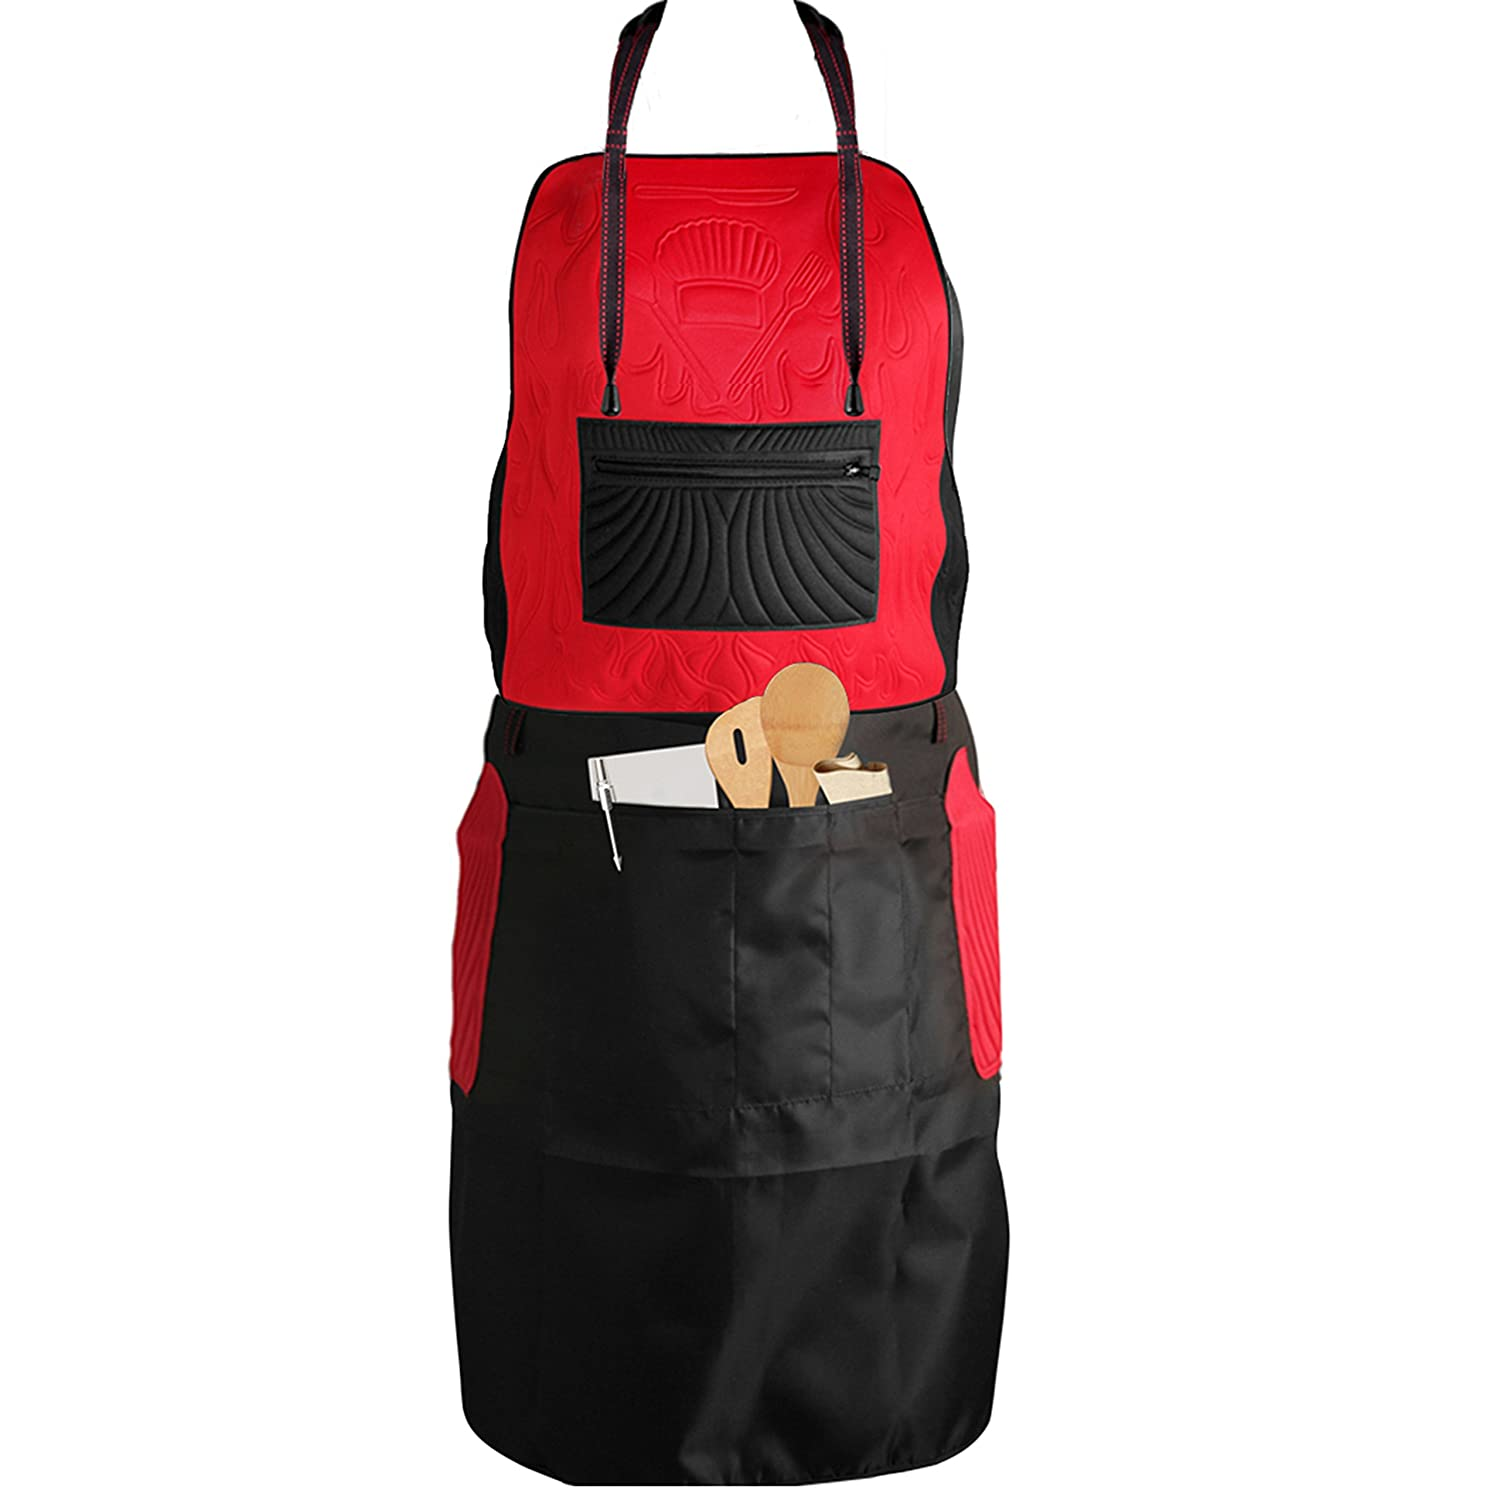 Double Sided CHEF kitchenware 2 styles Bib & Waist Black/Red Reversible Kitchen Apron for Women and Men Extra Comfort Neck Cushion with Custom Pockets for Cooking Baking Cleaning Serving by Metric USA Metric Products